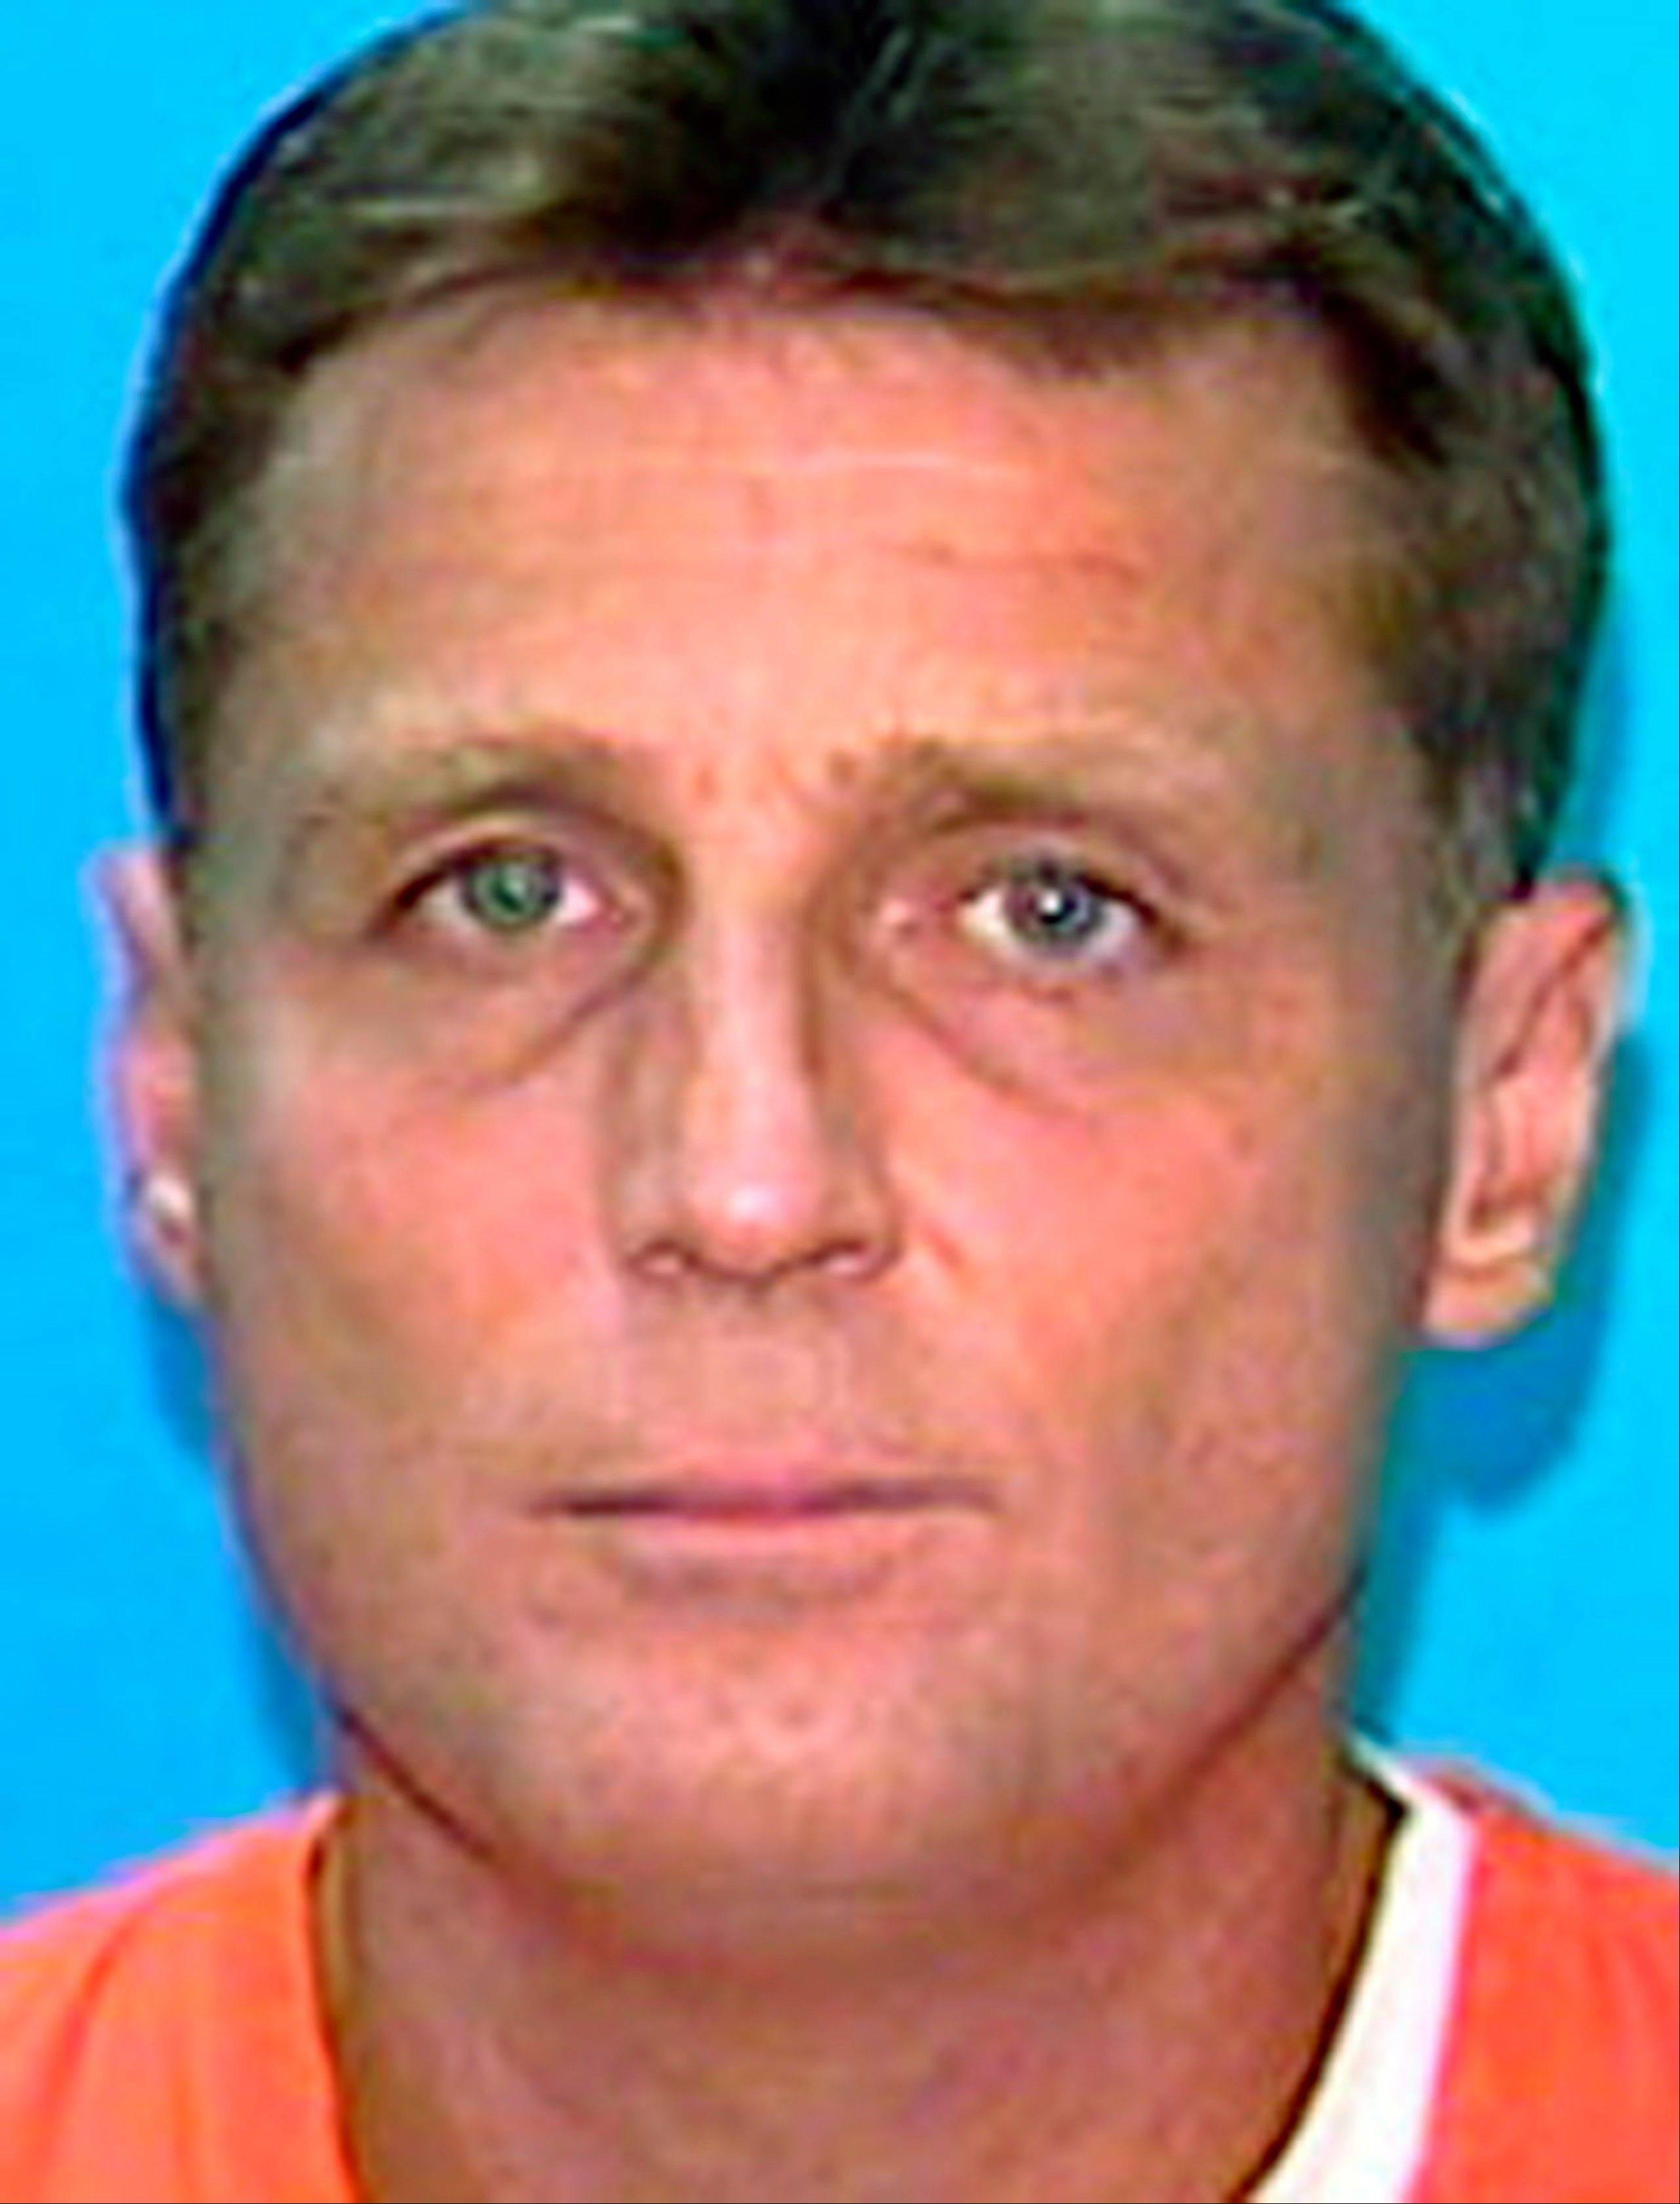 Convicted murderer Glen Rogers. A documentary set to air Wednesday, Nov. 21, 2012, says Rogers, who is on Florida's death row, could know something about the murder of OJ Simpson's wife Nicole and her friend Ron Goldman.